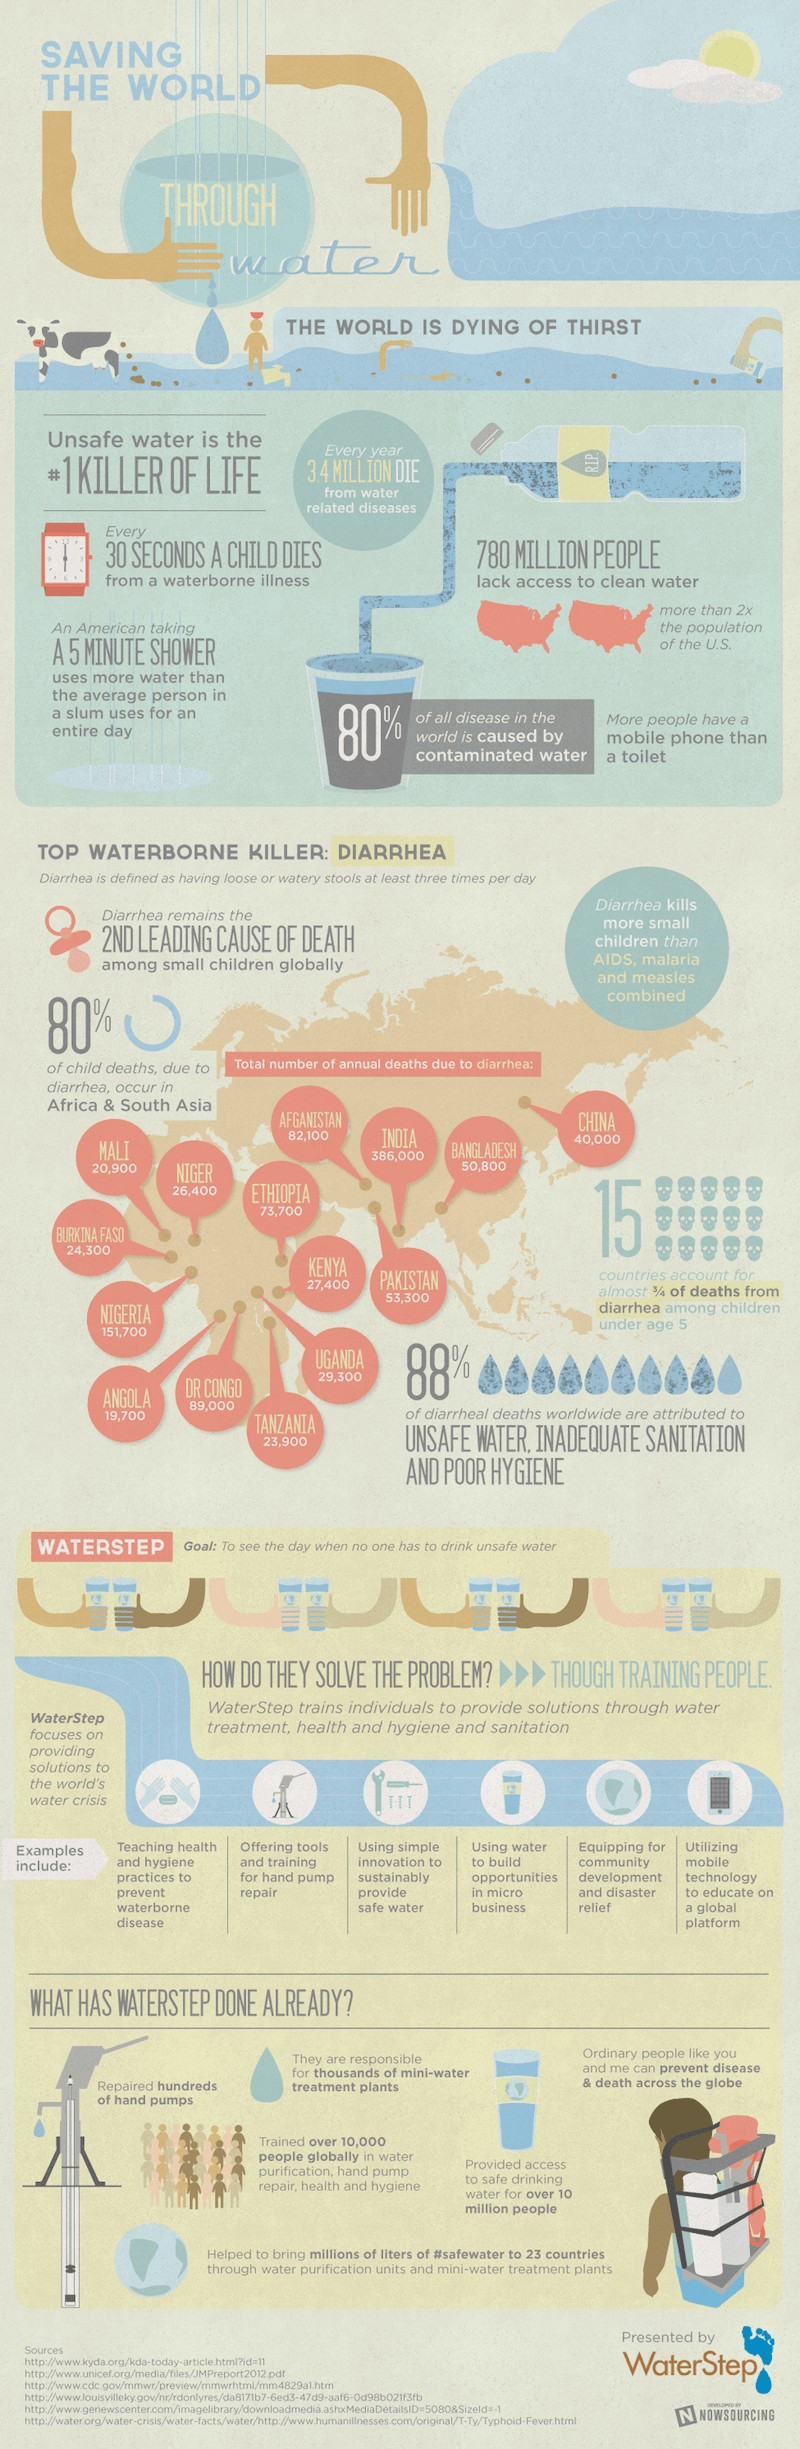 waterstep infographic